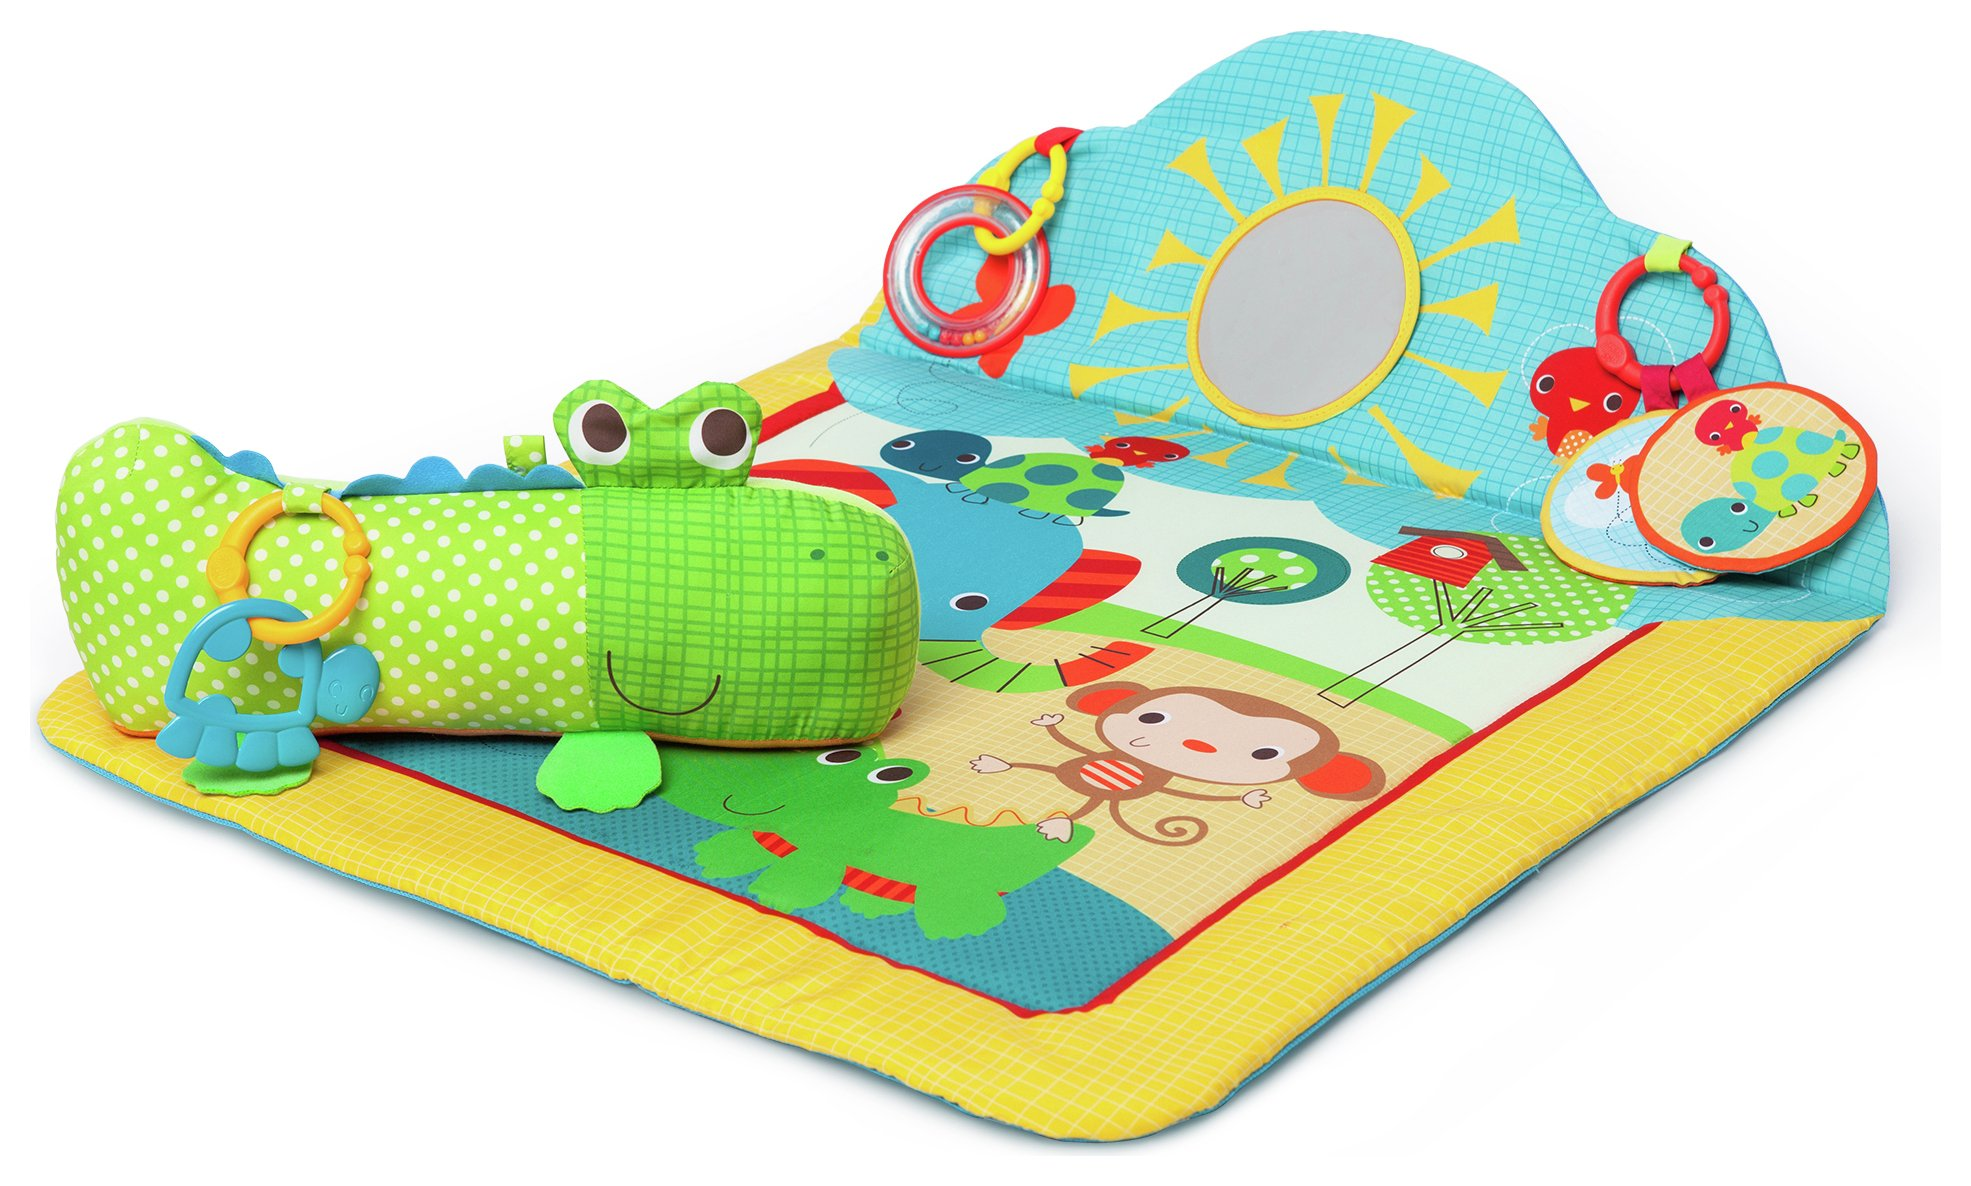 Image of Bright Starts Cuddly Crocodile Play Mat.